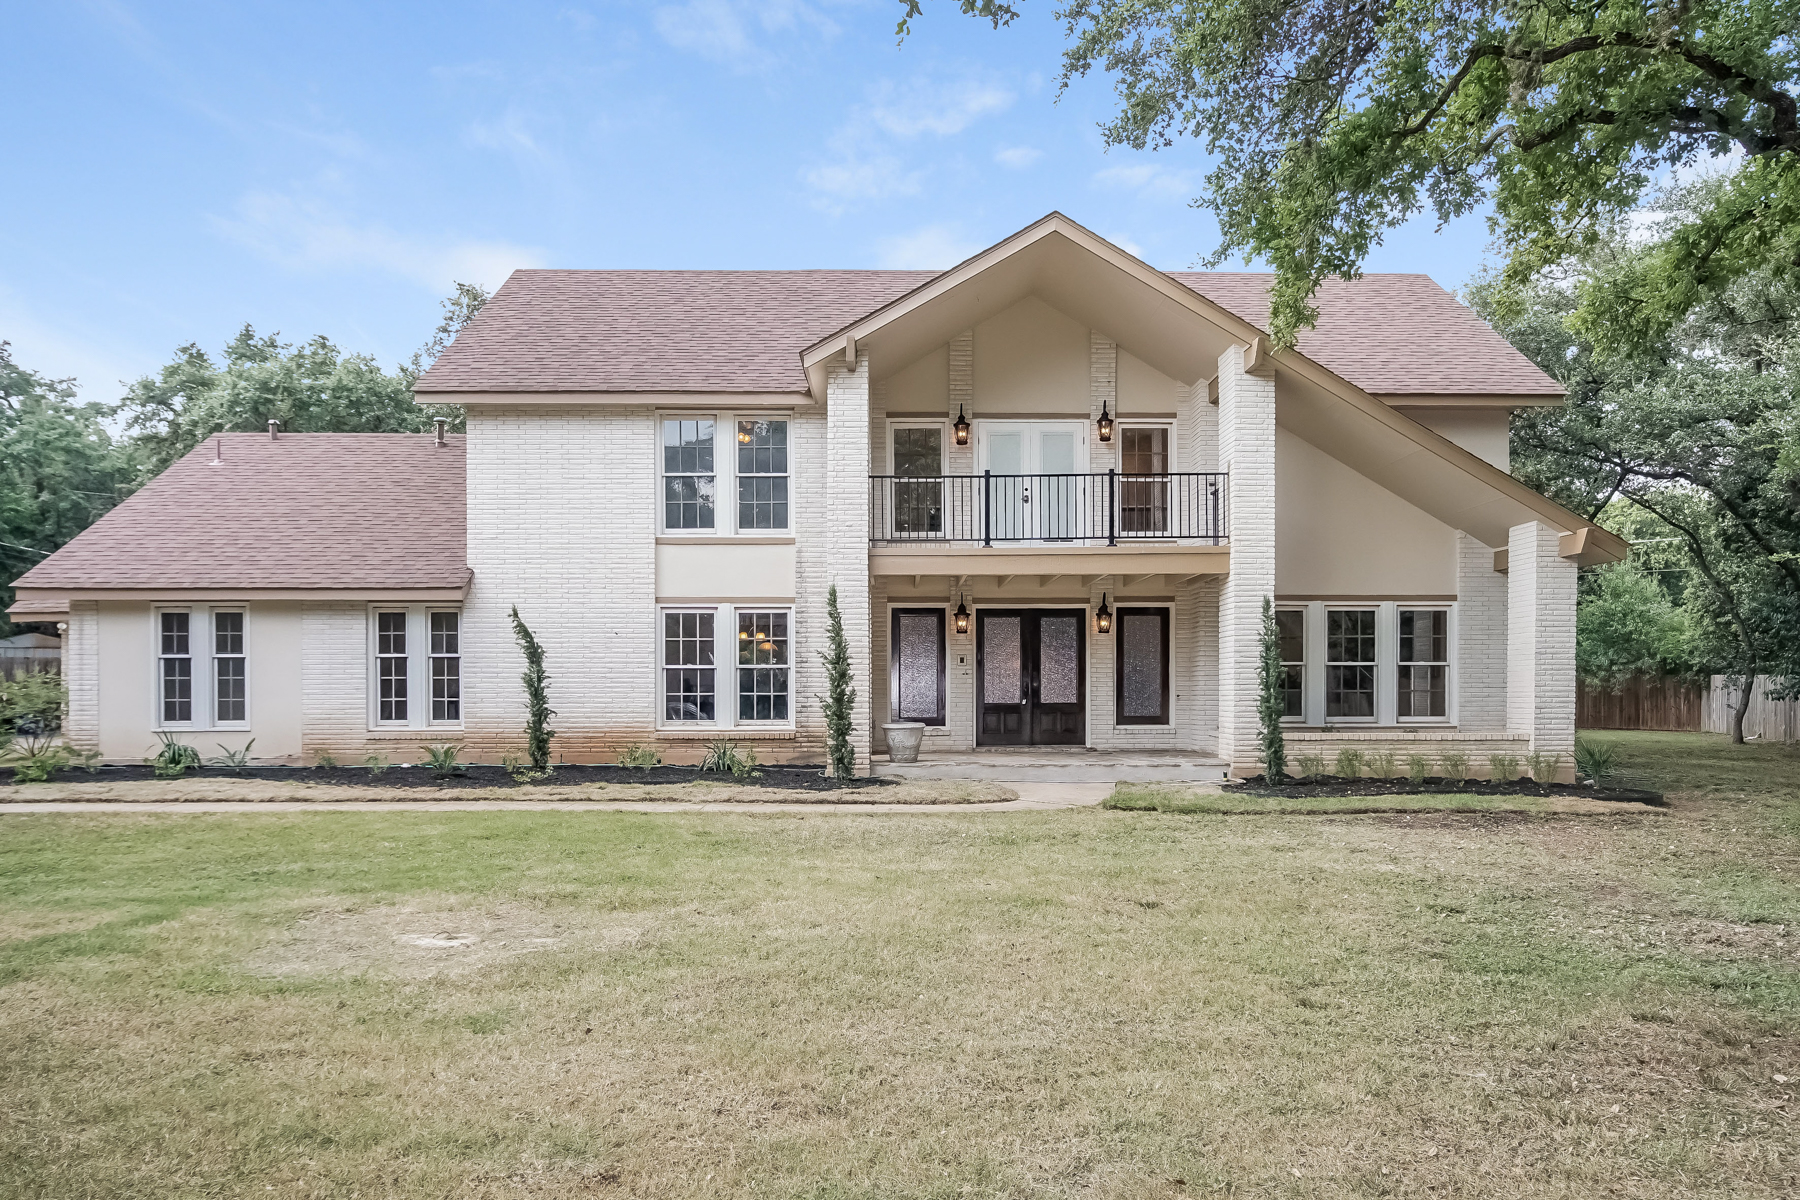 Single Family Home for Sale at Stunning Home in Shavano Park 117 Painted Post San Antonio, Texas 78231 United States